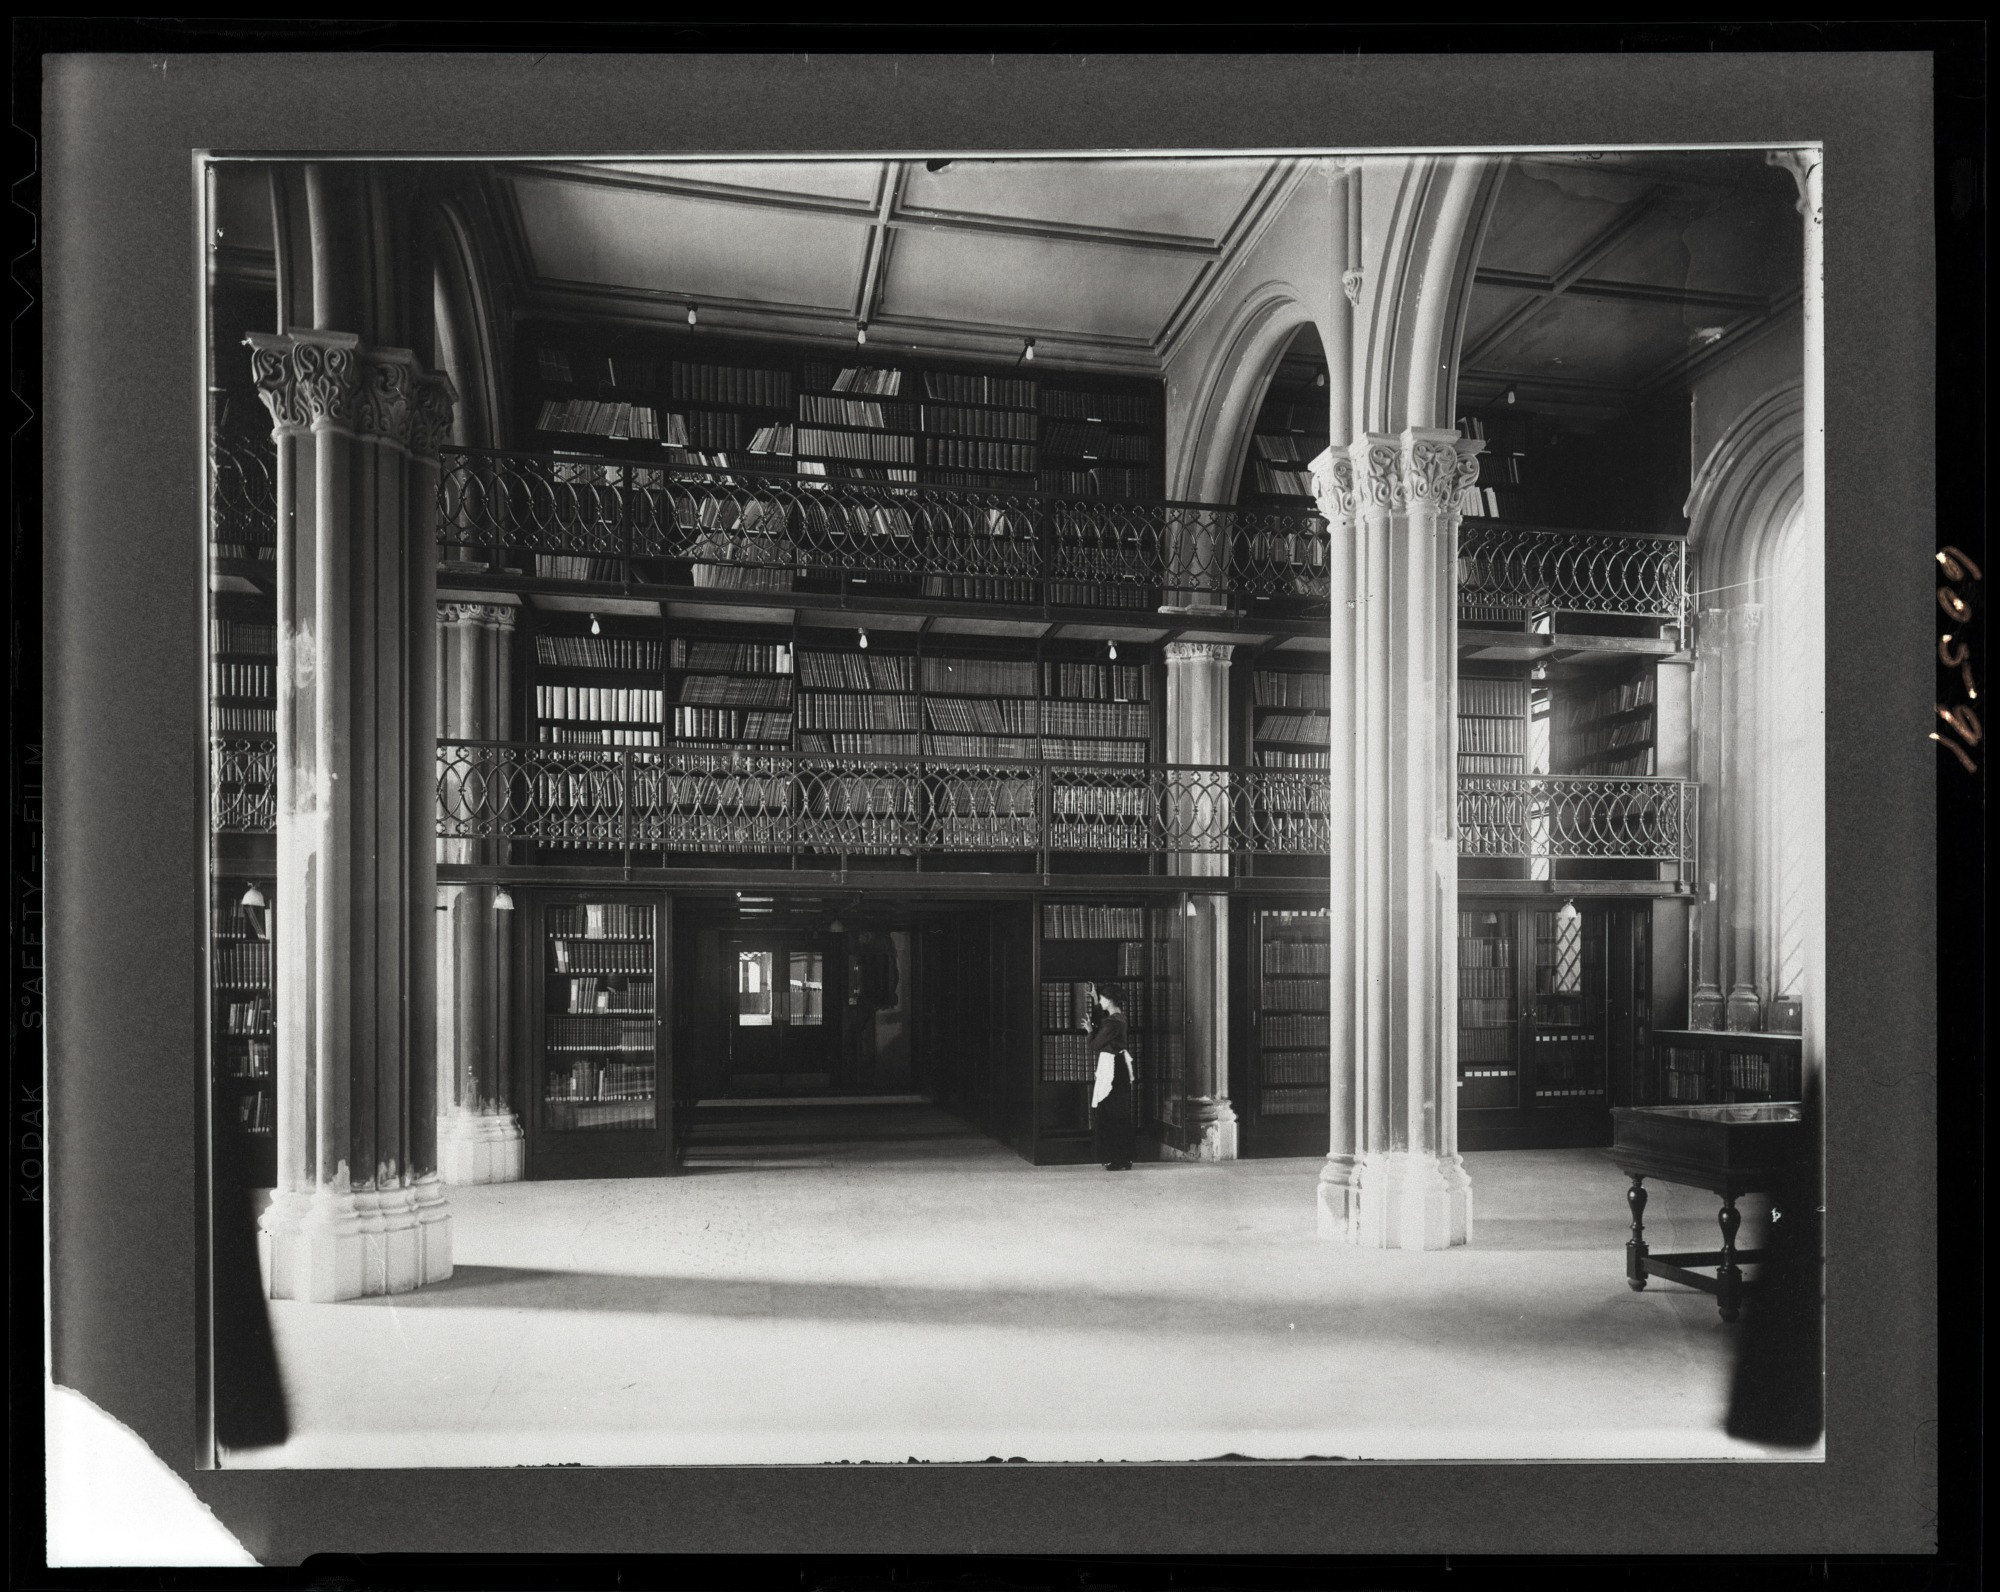 Library, Lower Main Hall, Smithsonian Institution Building